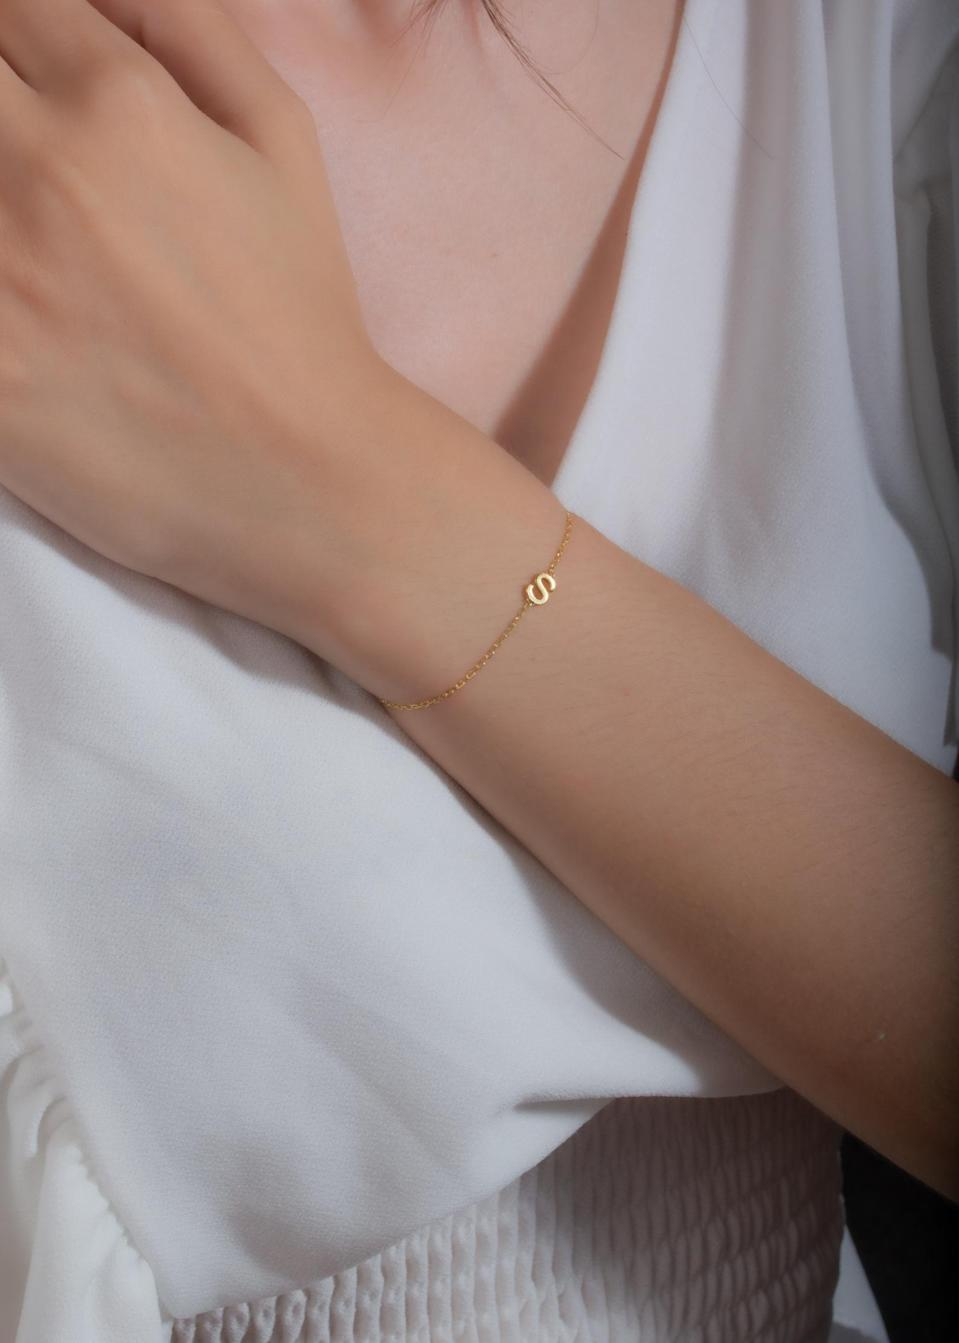 <p>You'll wear this <span>Custom JWL Letter Bracelet</span> ($18 and up) all the time.</p>